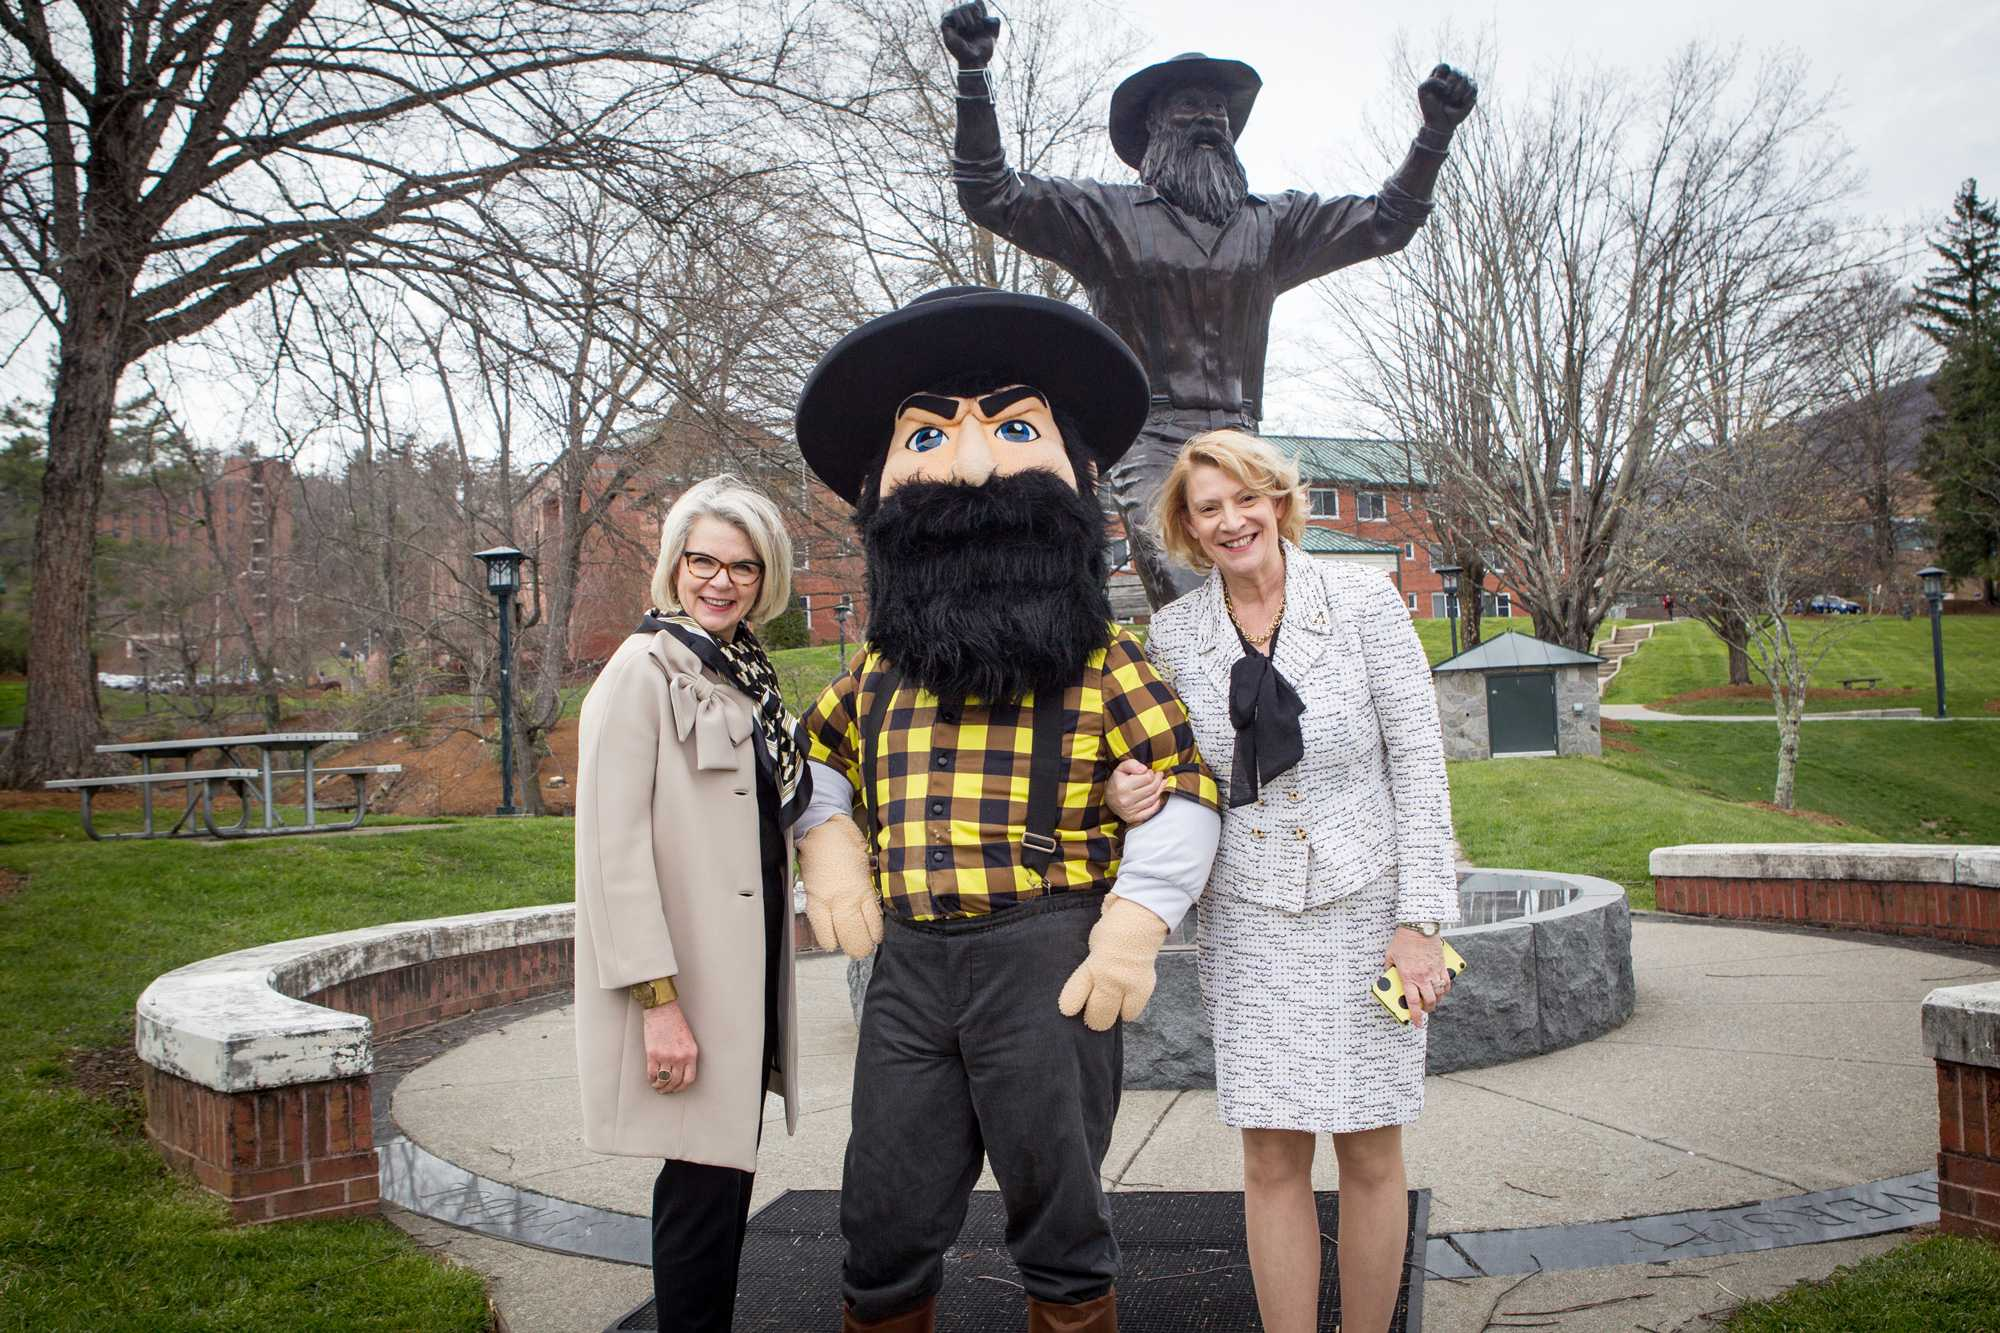 University of North Carolina System President Margaret Spellings and Chancellor Everts stand in front of the Yosef statue with Yosef.